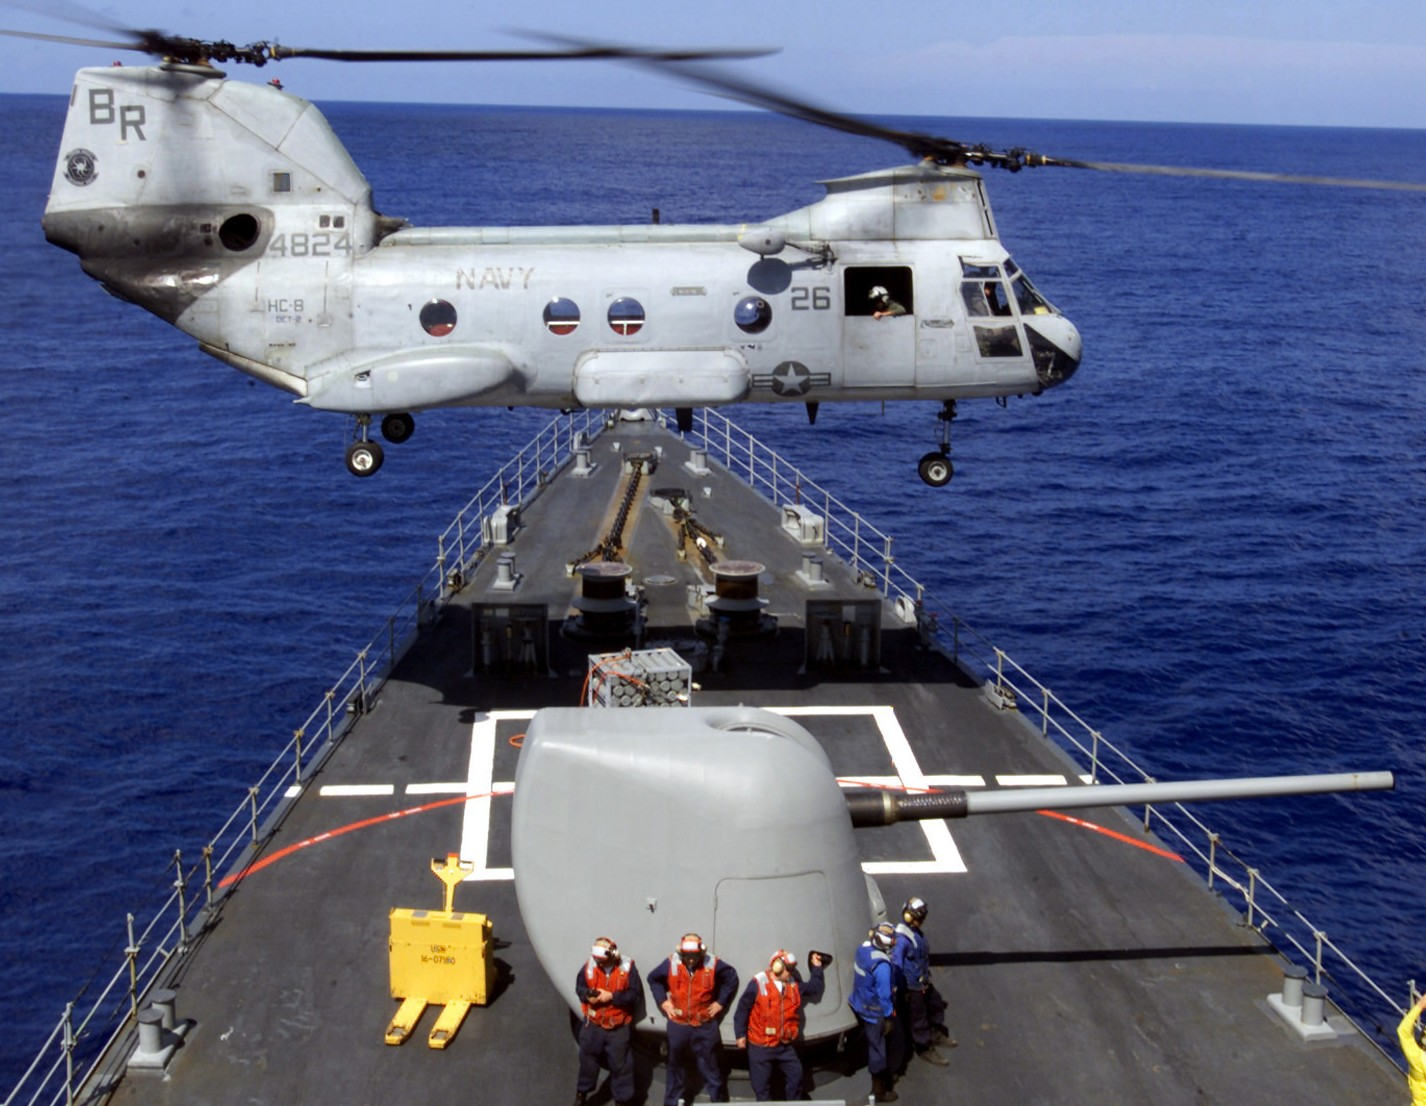 HC-8 Dragon Whales Helicopter Combat Support Squadron US Navy